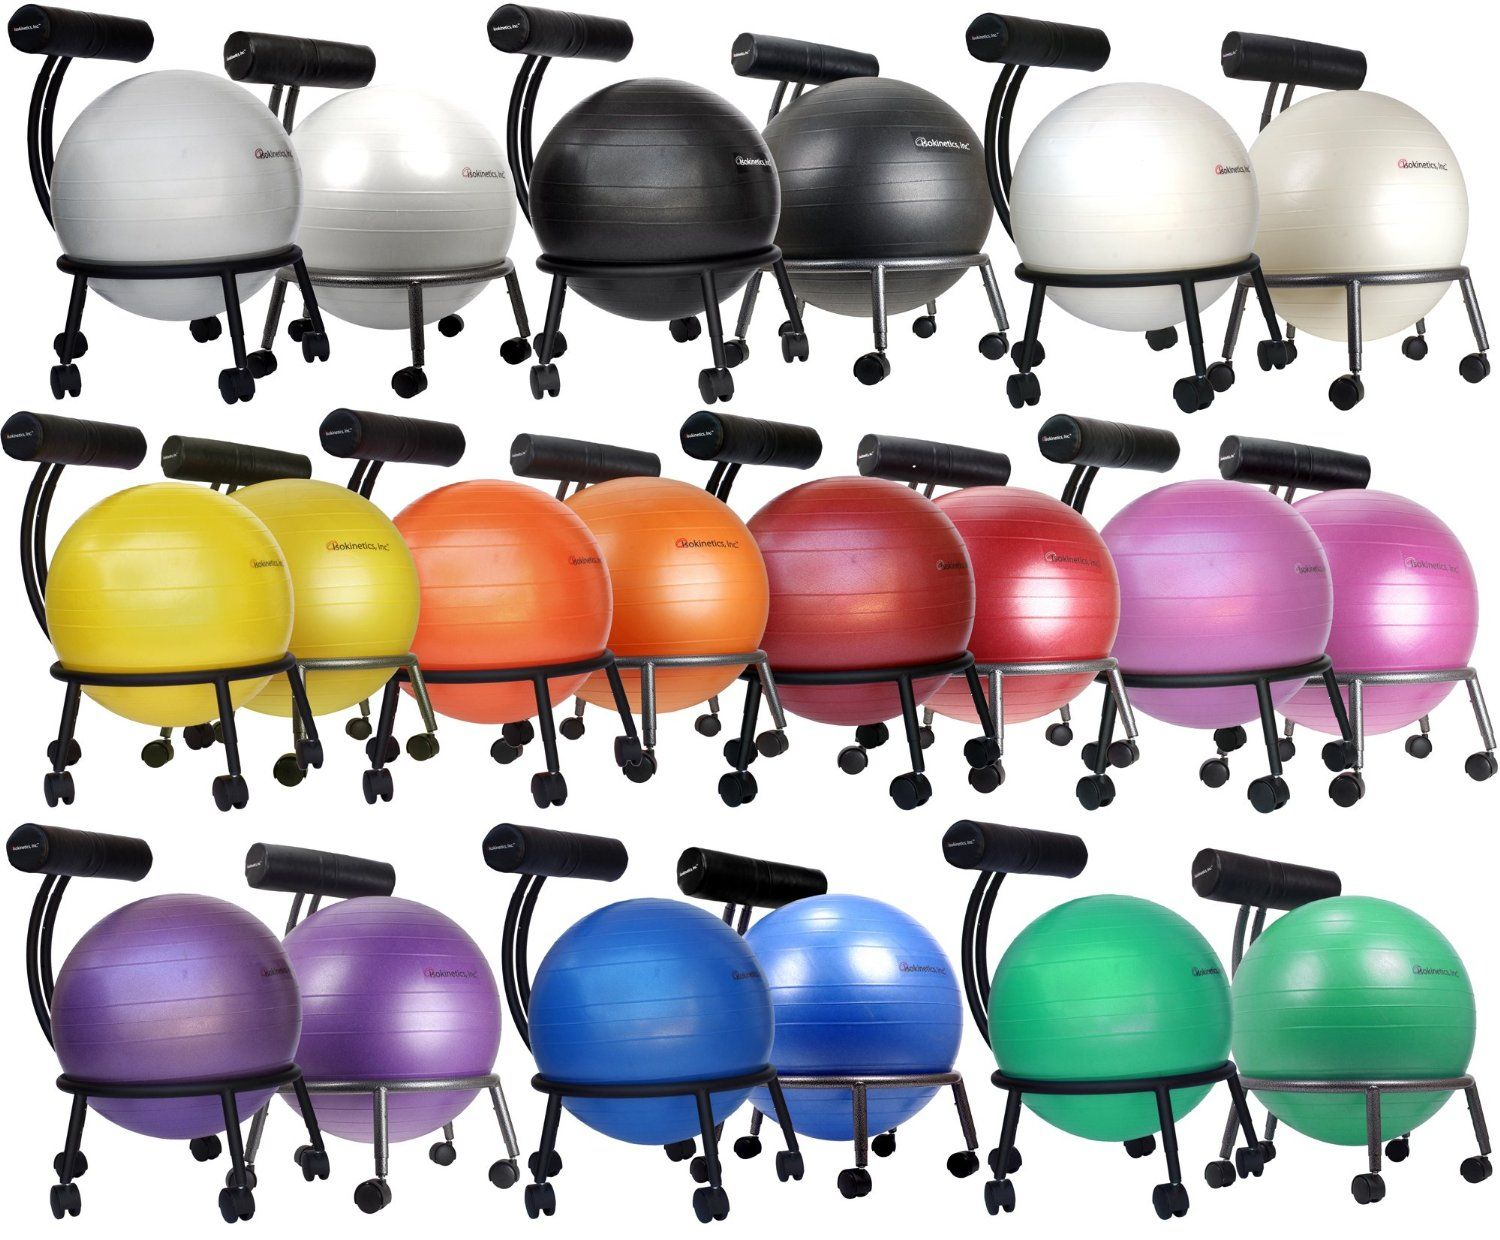 Fitness Yoga Ball Chair from Isokinetics